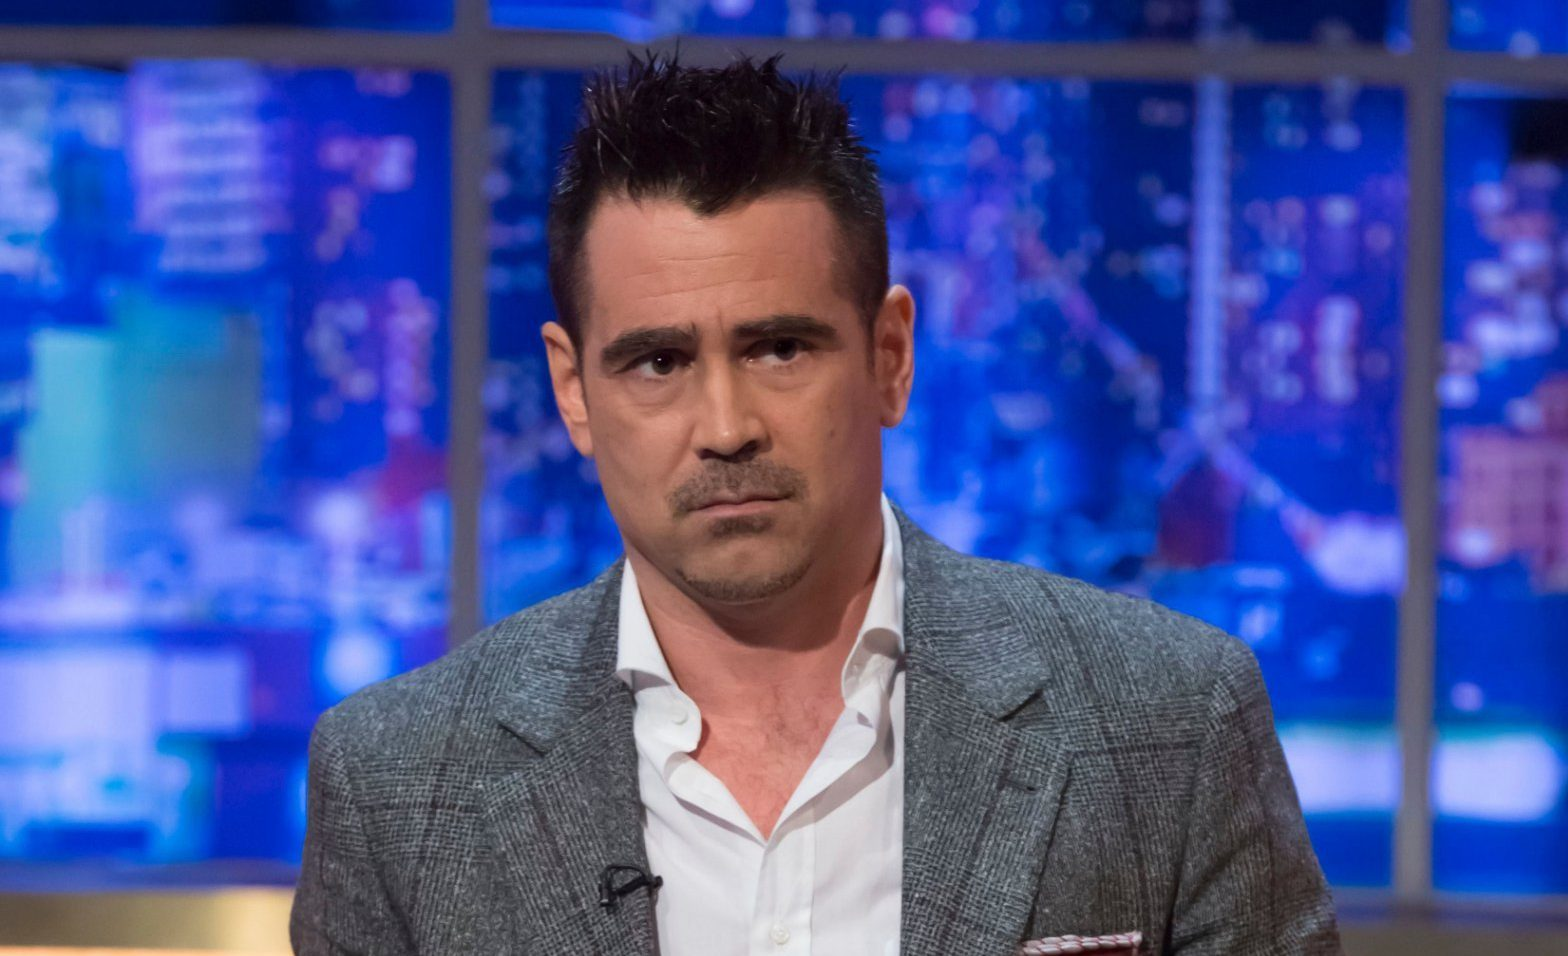 Mandatory Credit: Brian J Ritchie/Hotsauce Editorial Use Only Mandatory Credit: Photo by Brian J Ritchie/Hotsauce/REX (10163640aa) Colin Farrell 'The Jonathan Ross Show' TV show, Series 14, Episode 4, London, UK - 23 Mar 2019